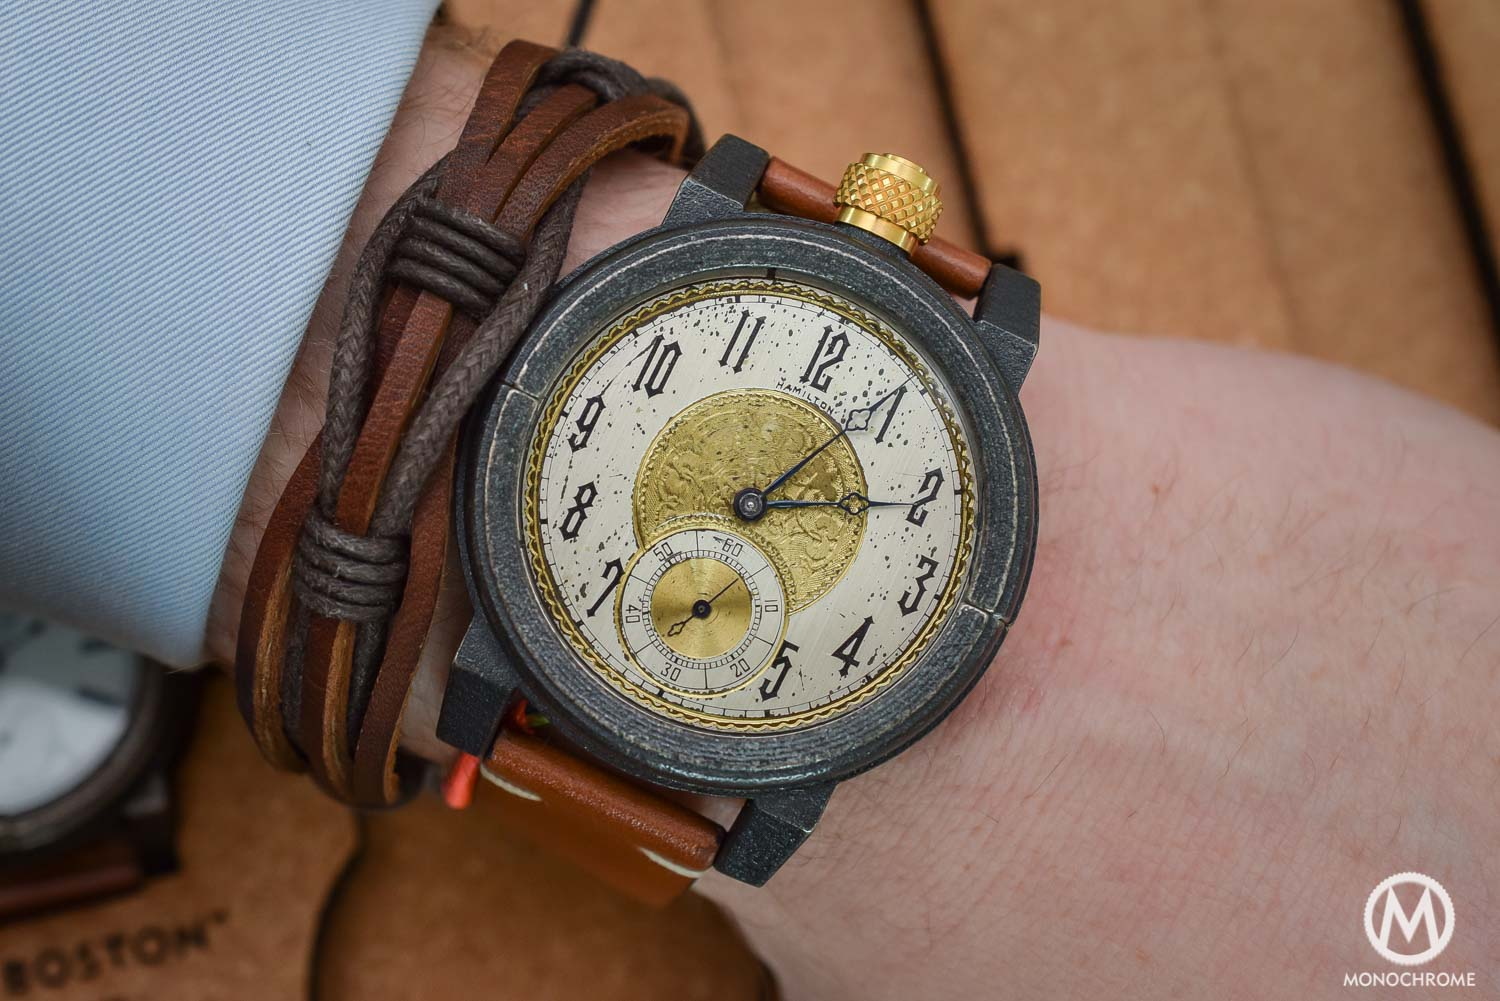 Vortic Watch Co - antique movements and 3D printed cases - 6